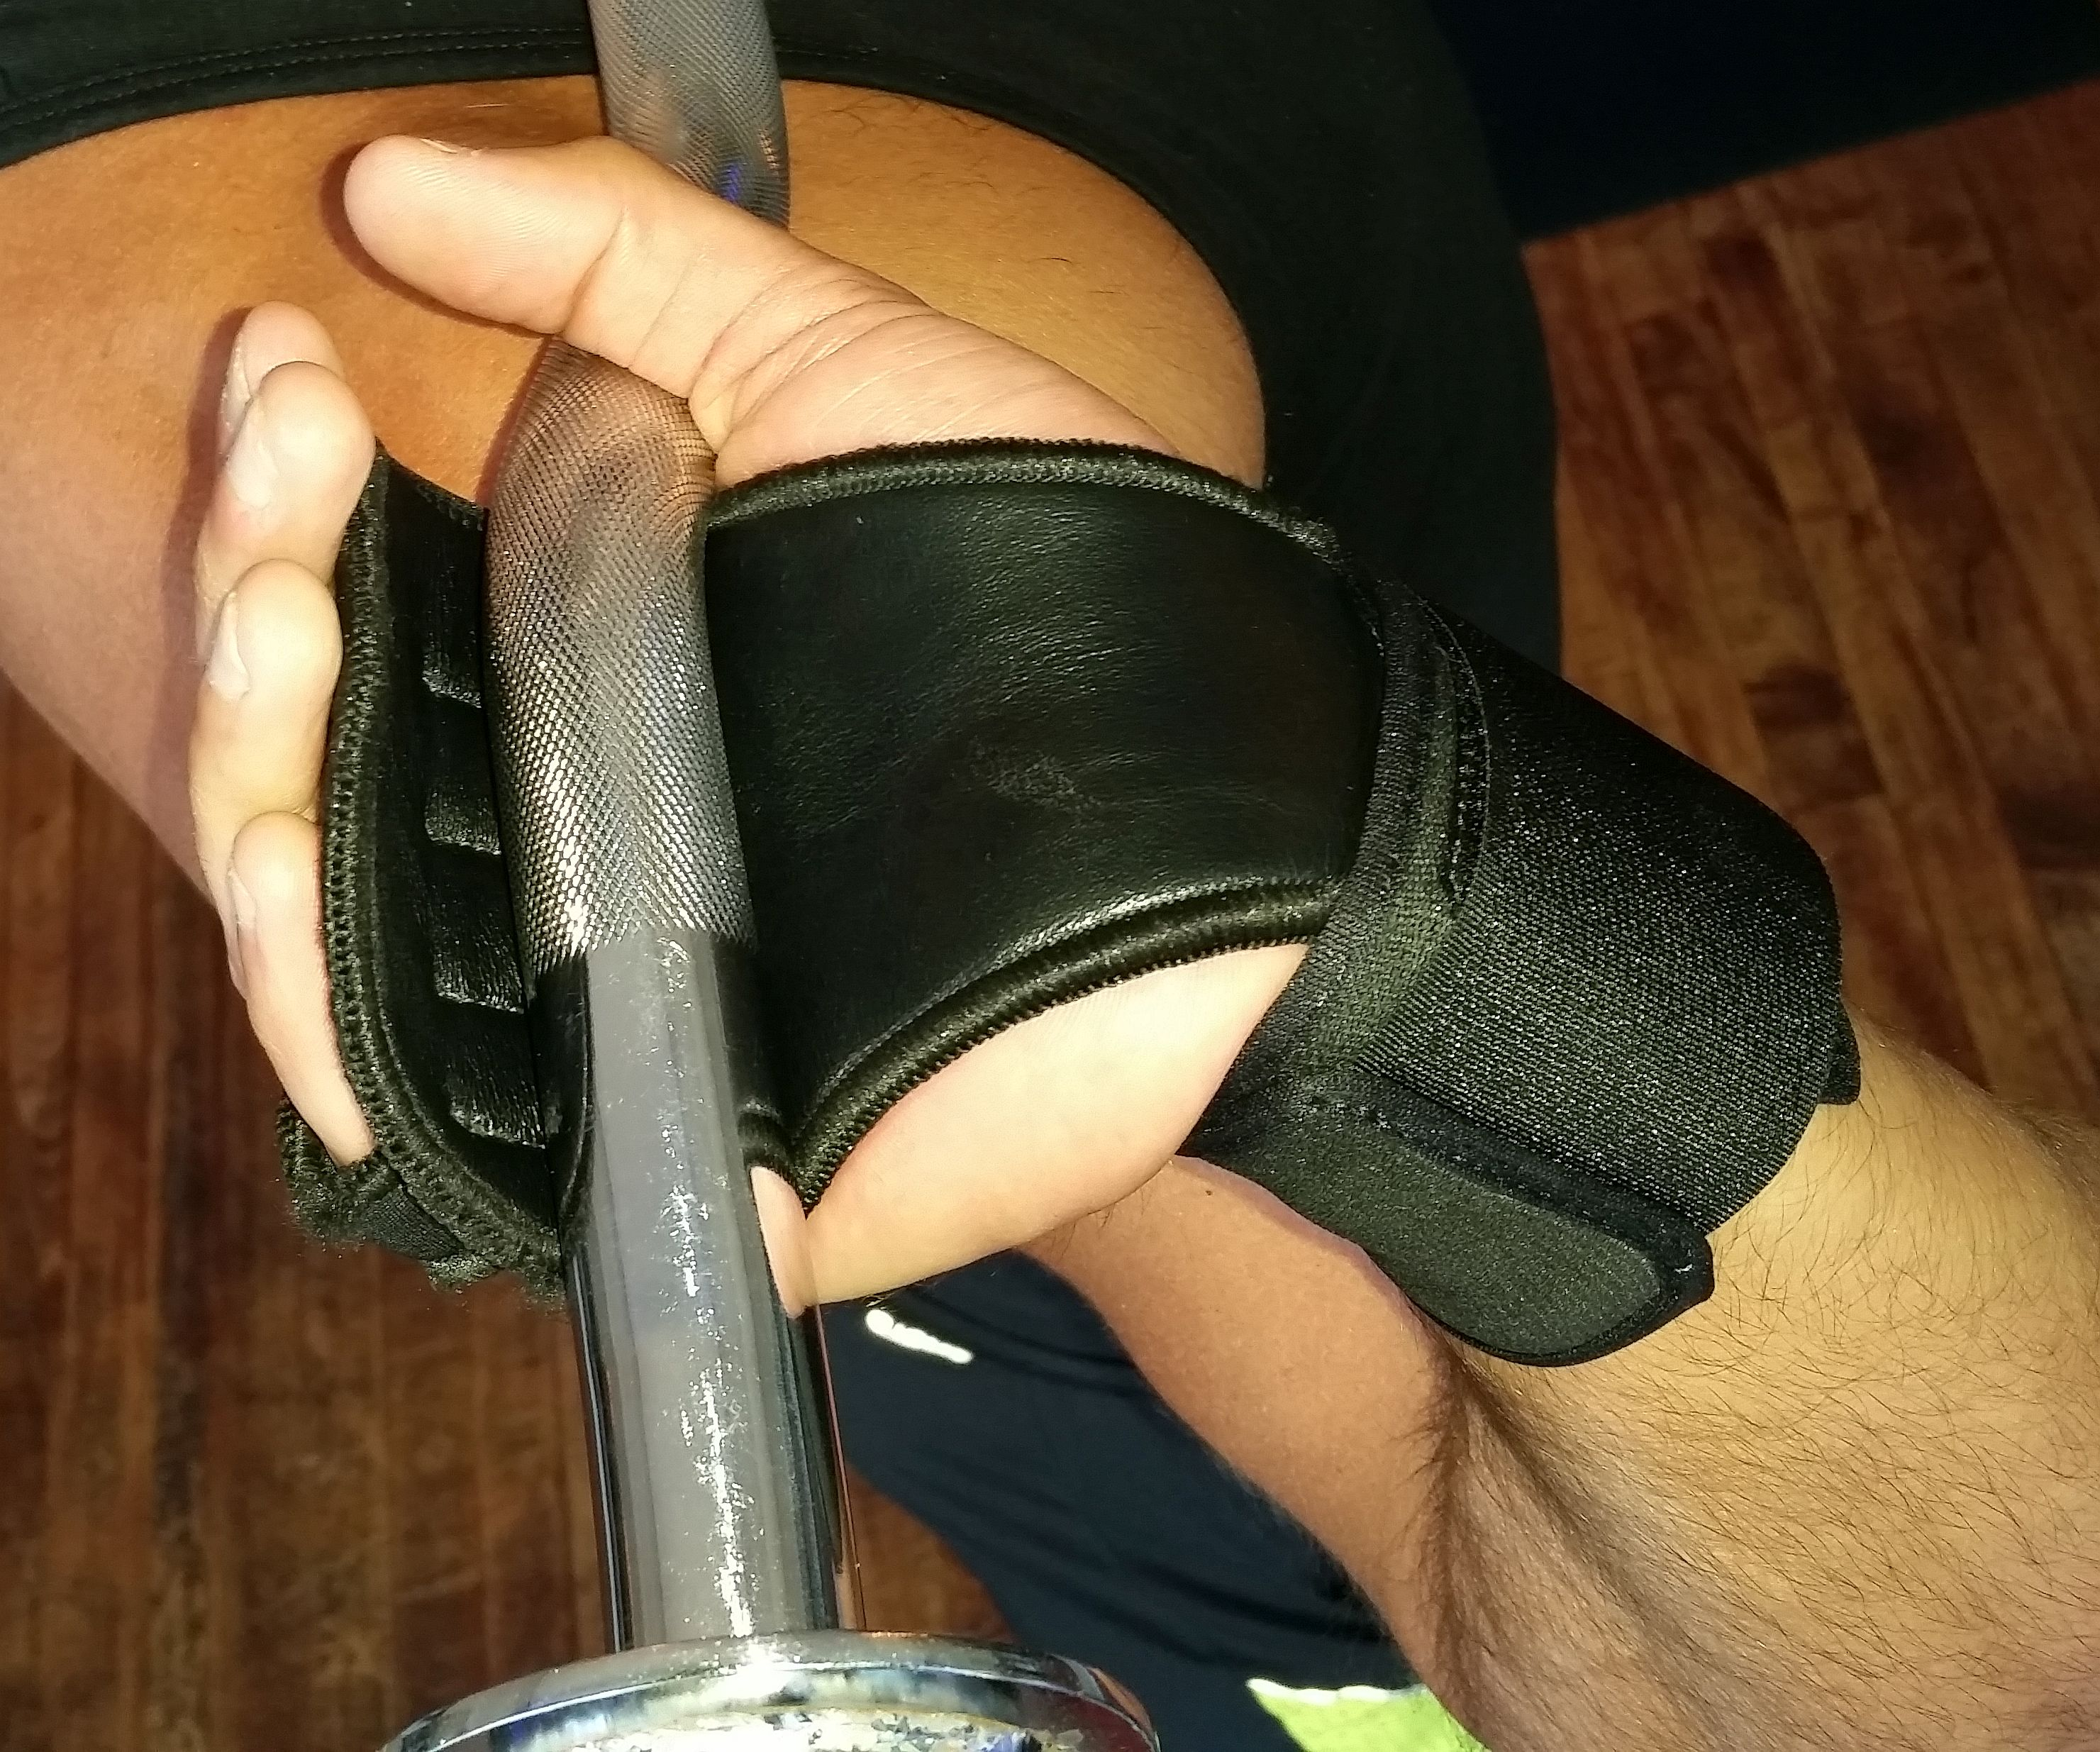 Crossfit Wrist Support